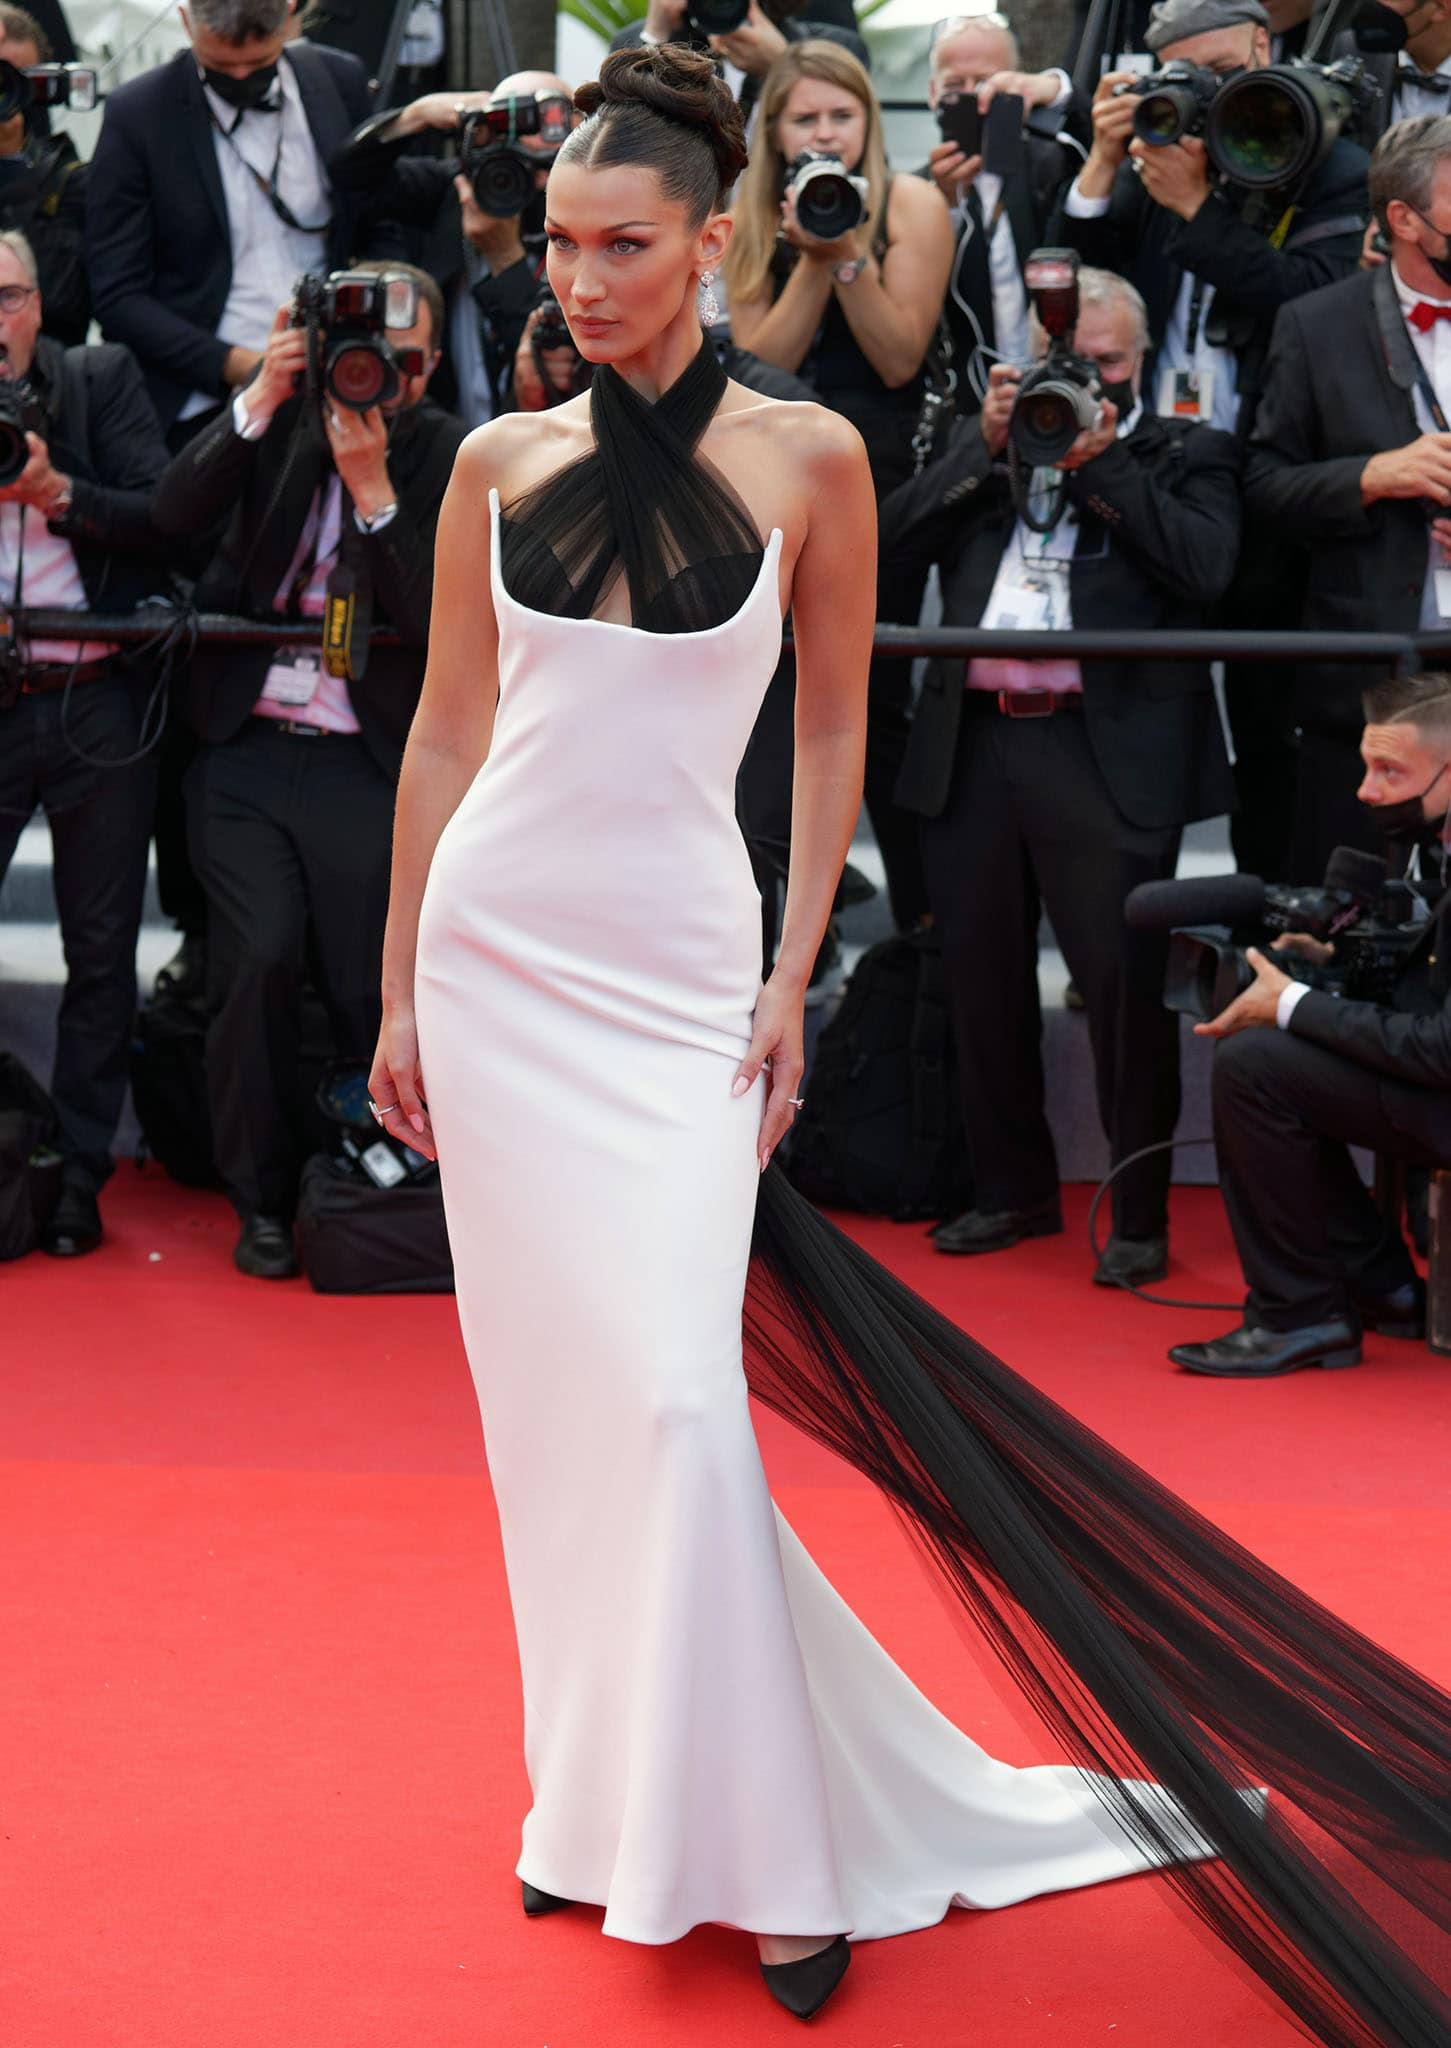 Bella Hadid stuns in her dramatic Jean-Paul Gaultier white gown with sheer black halter neck and train